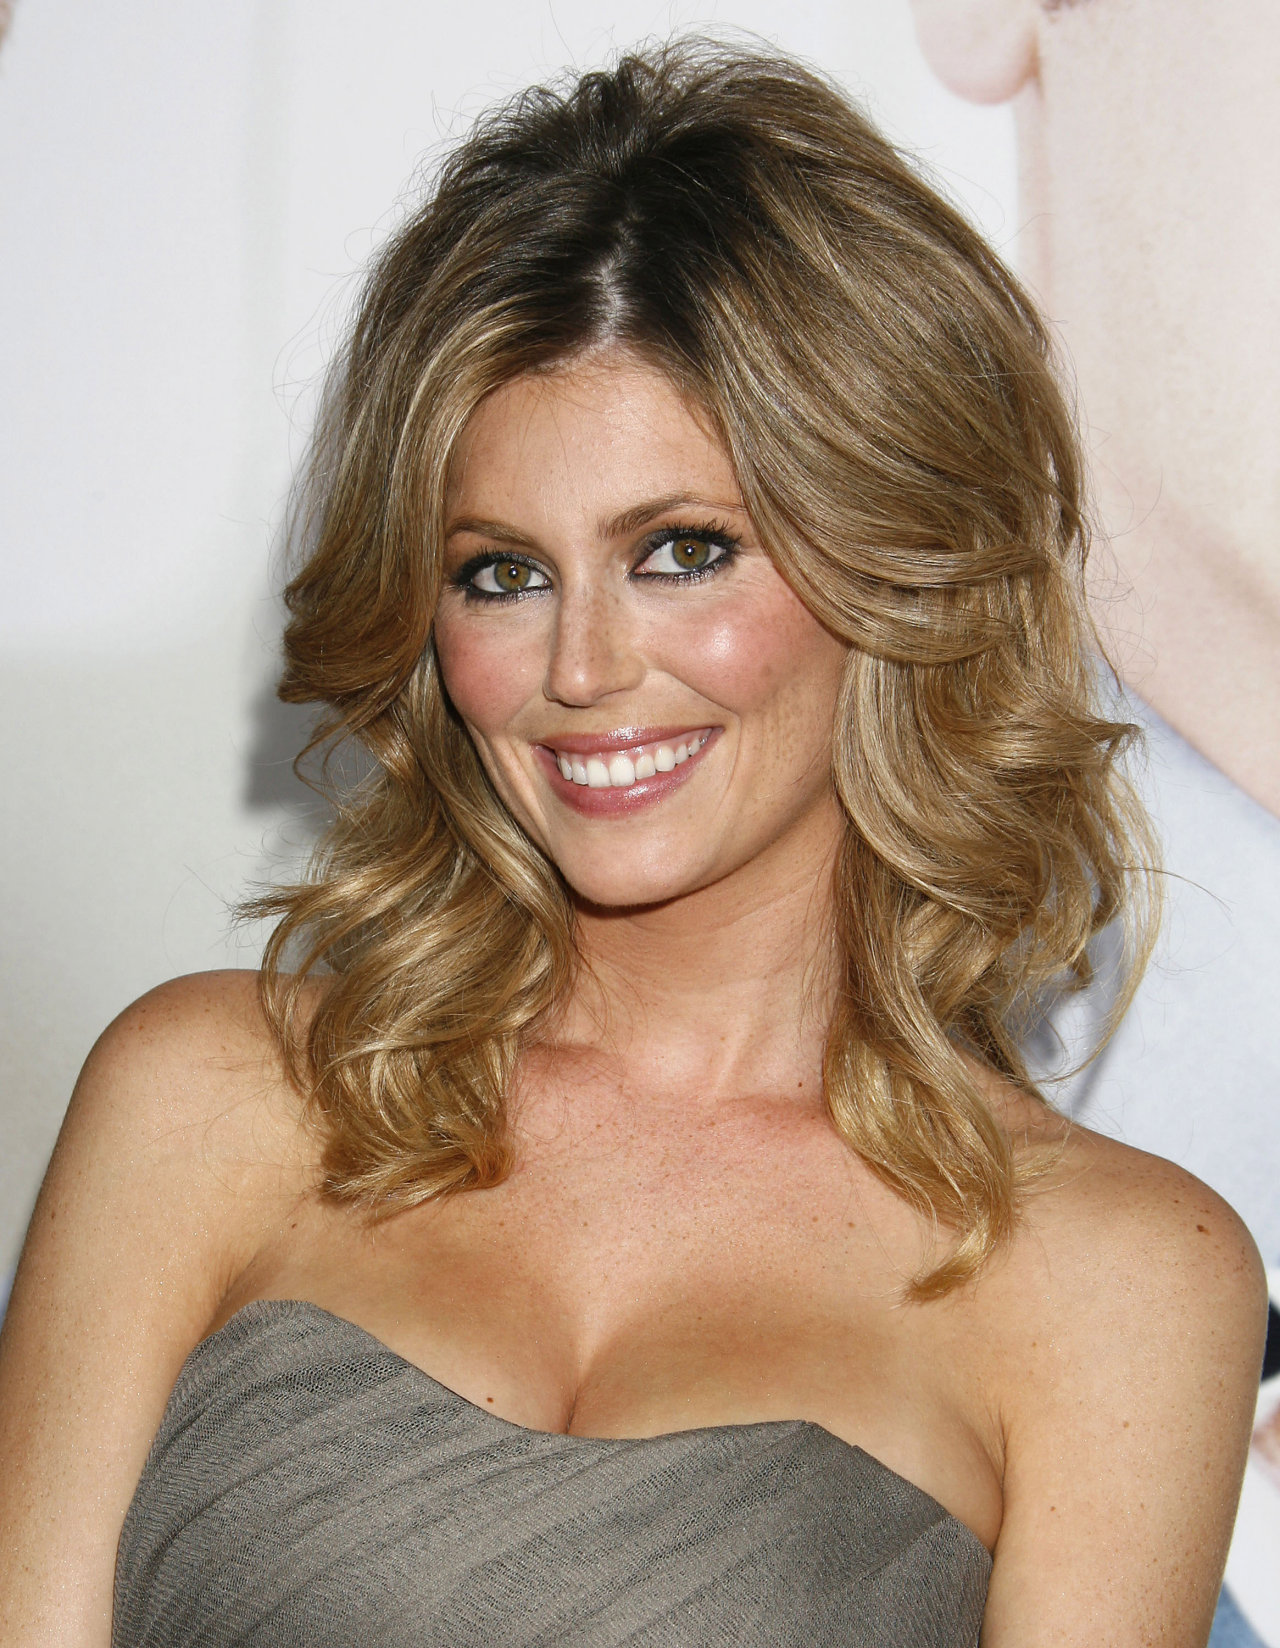 diora baird pic wallpapers - photo #17